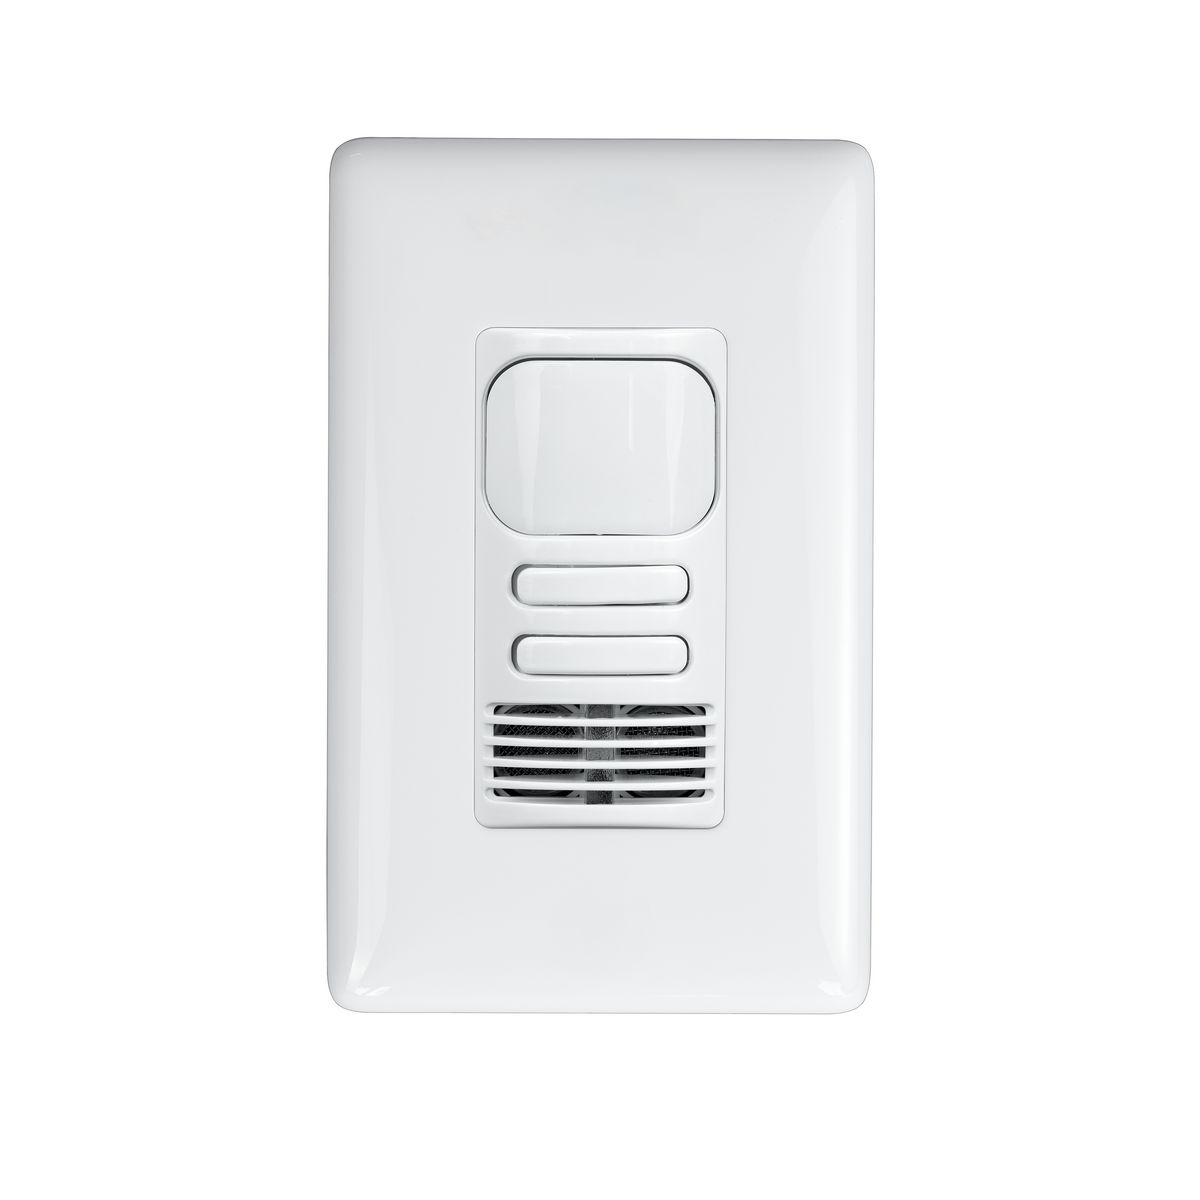 Occupancy Vacancy Sensors Lighting Controls Low Voltage Switches With Multiple Light Wiring Schematics Lighthawk2 Dual Technology